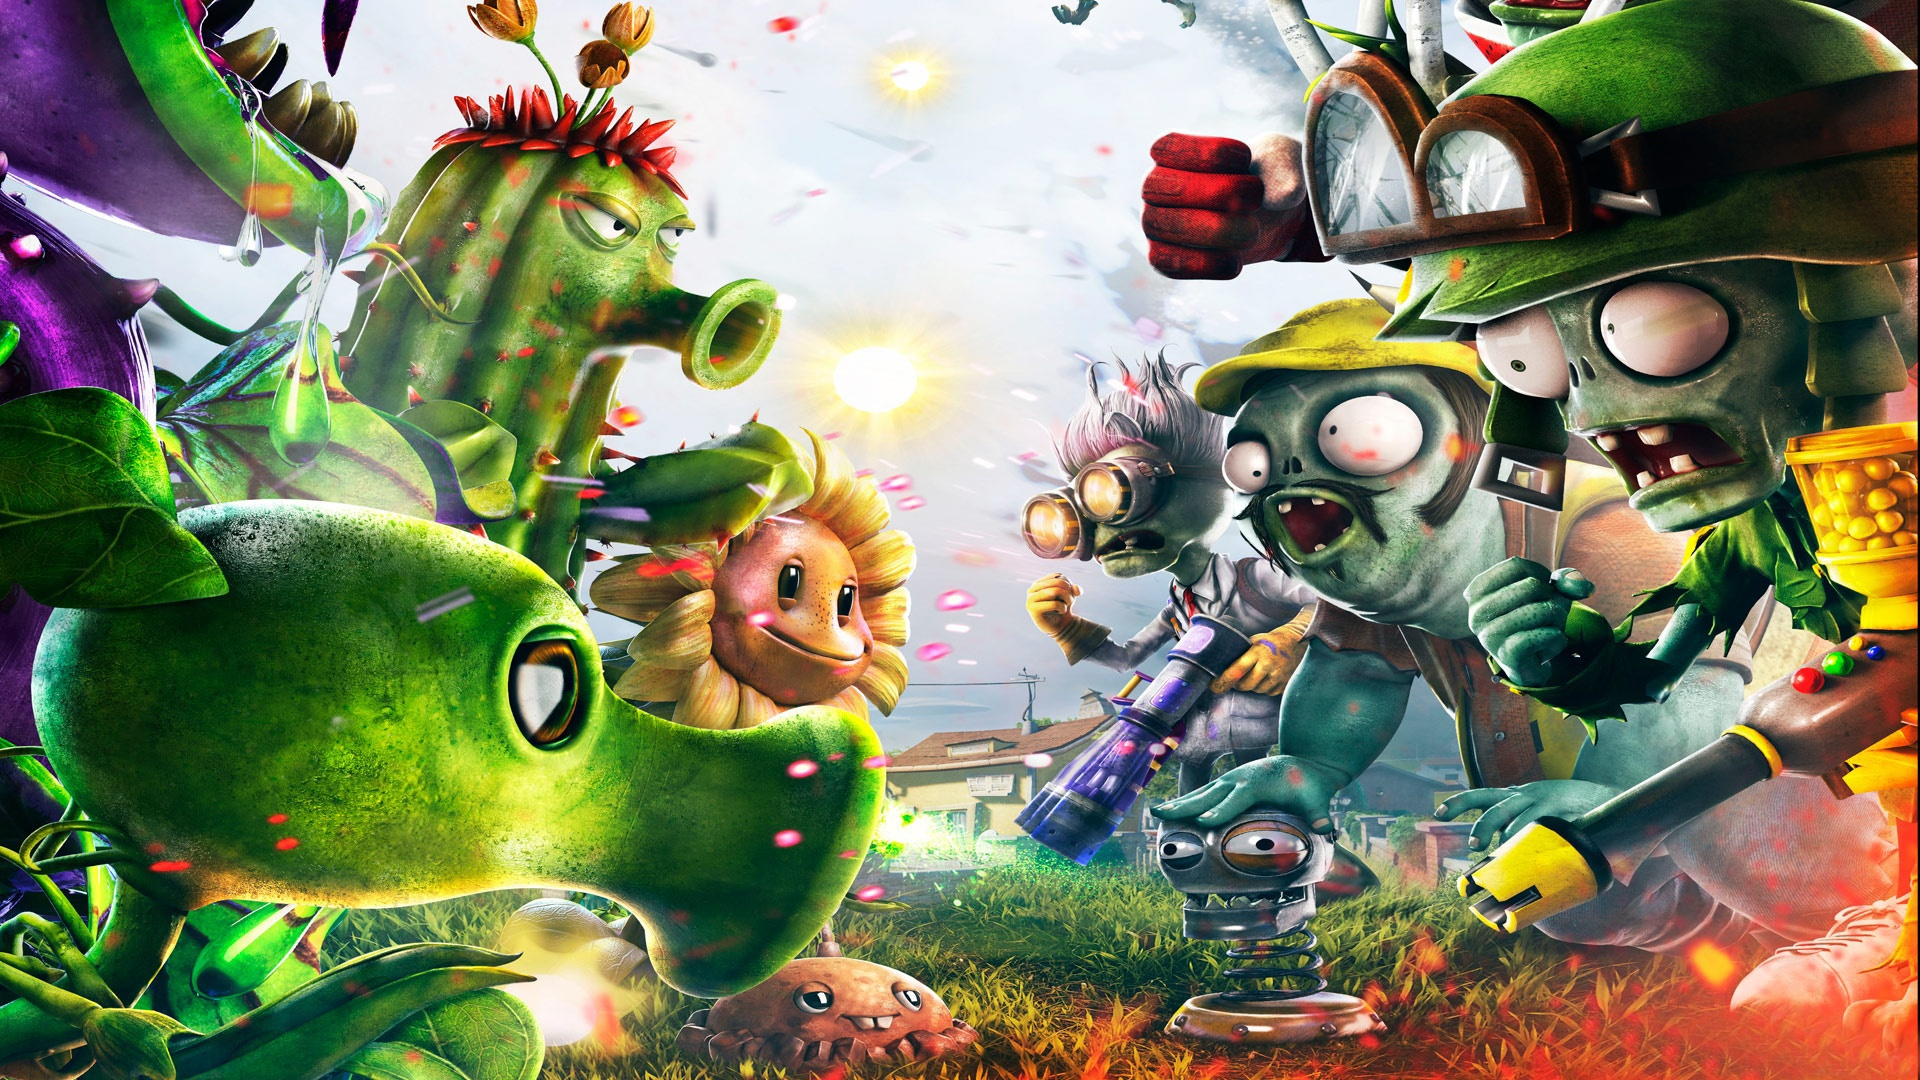 Plant Vs Zombies 2 Wallpaper: Wallpaper Plants Vs Zombies 2 1920x1080 Full HD Picture, Image